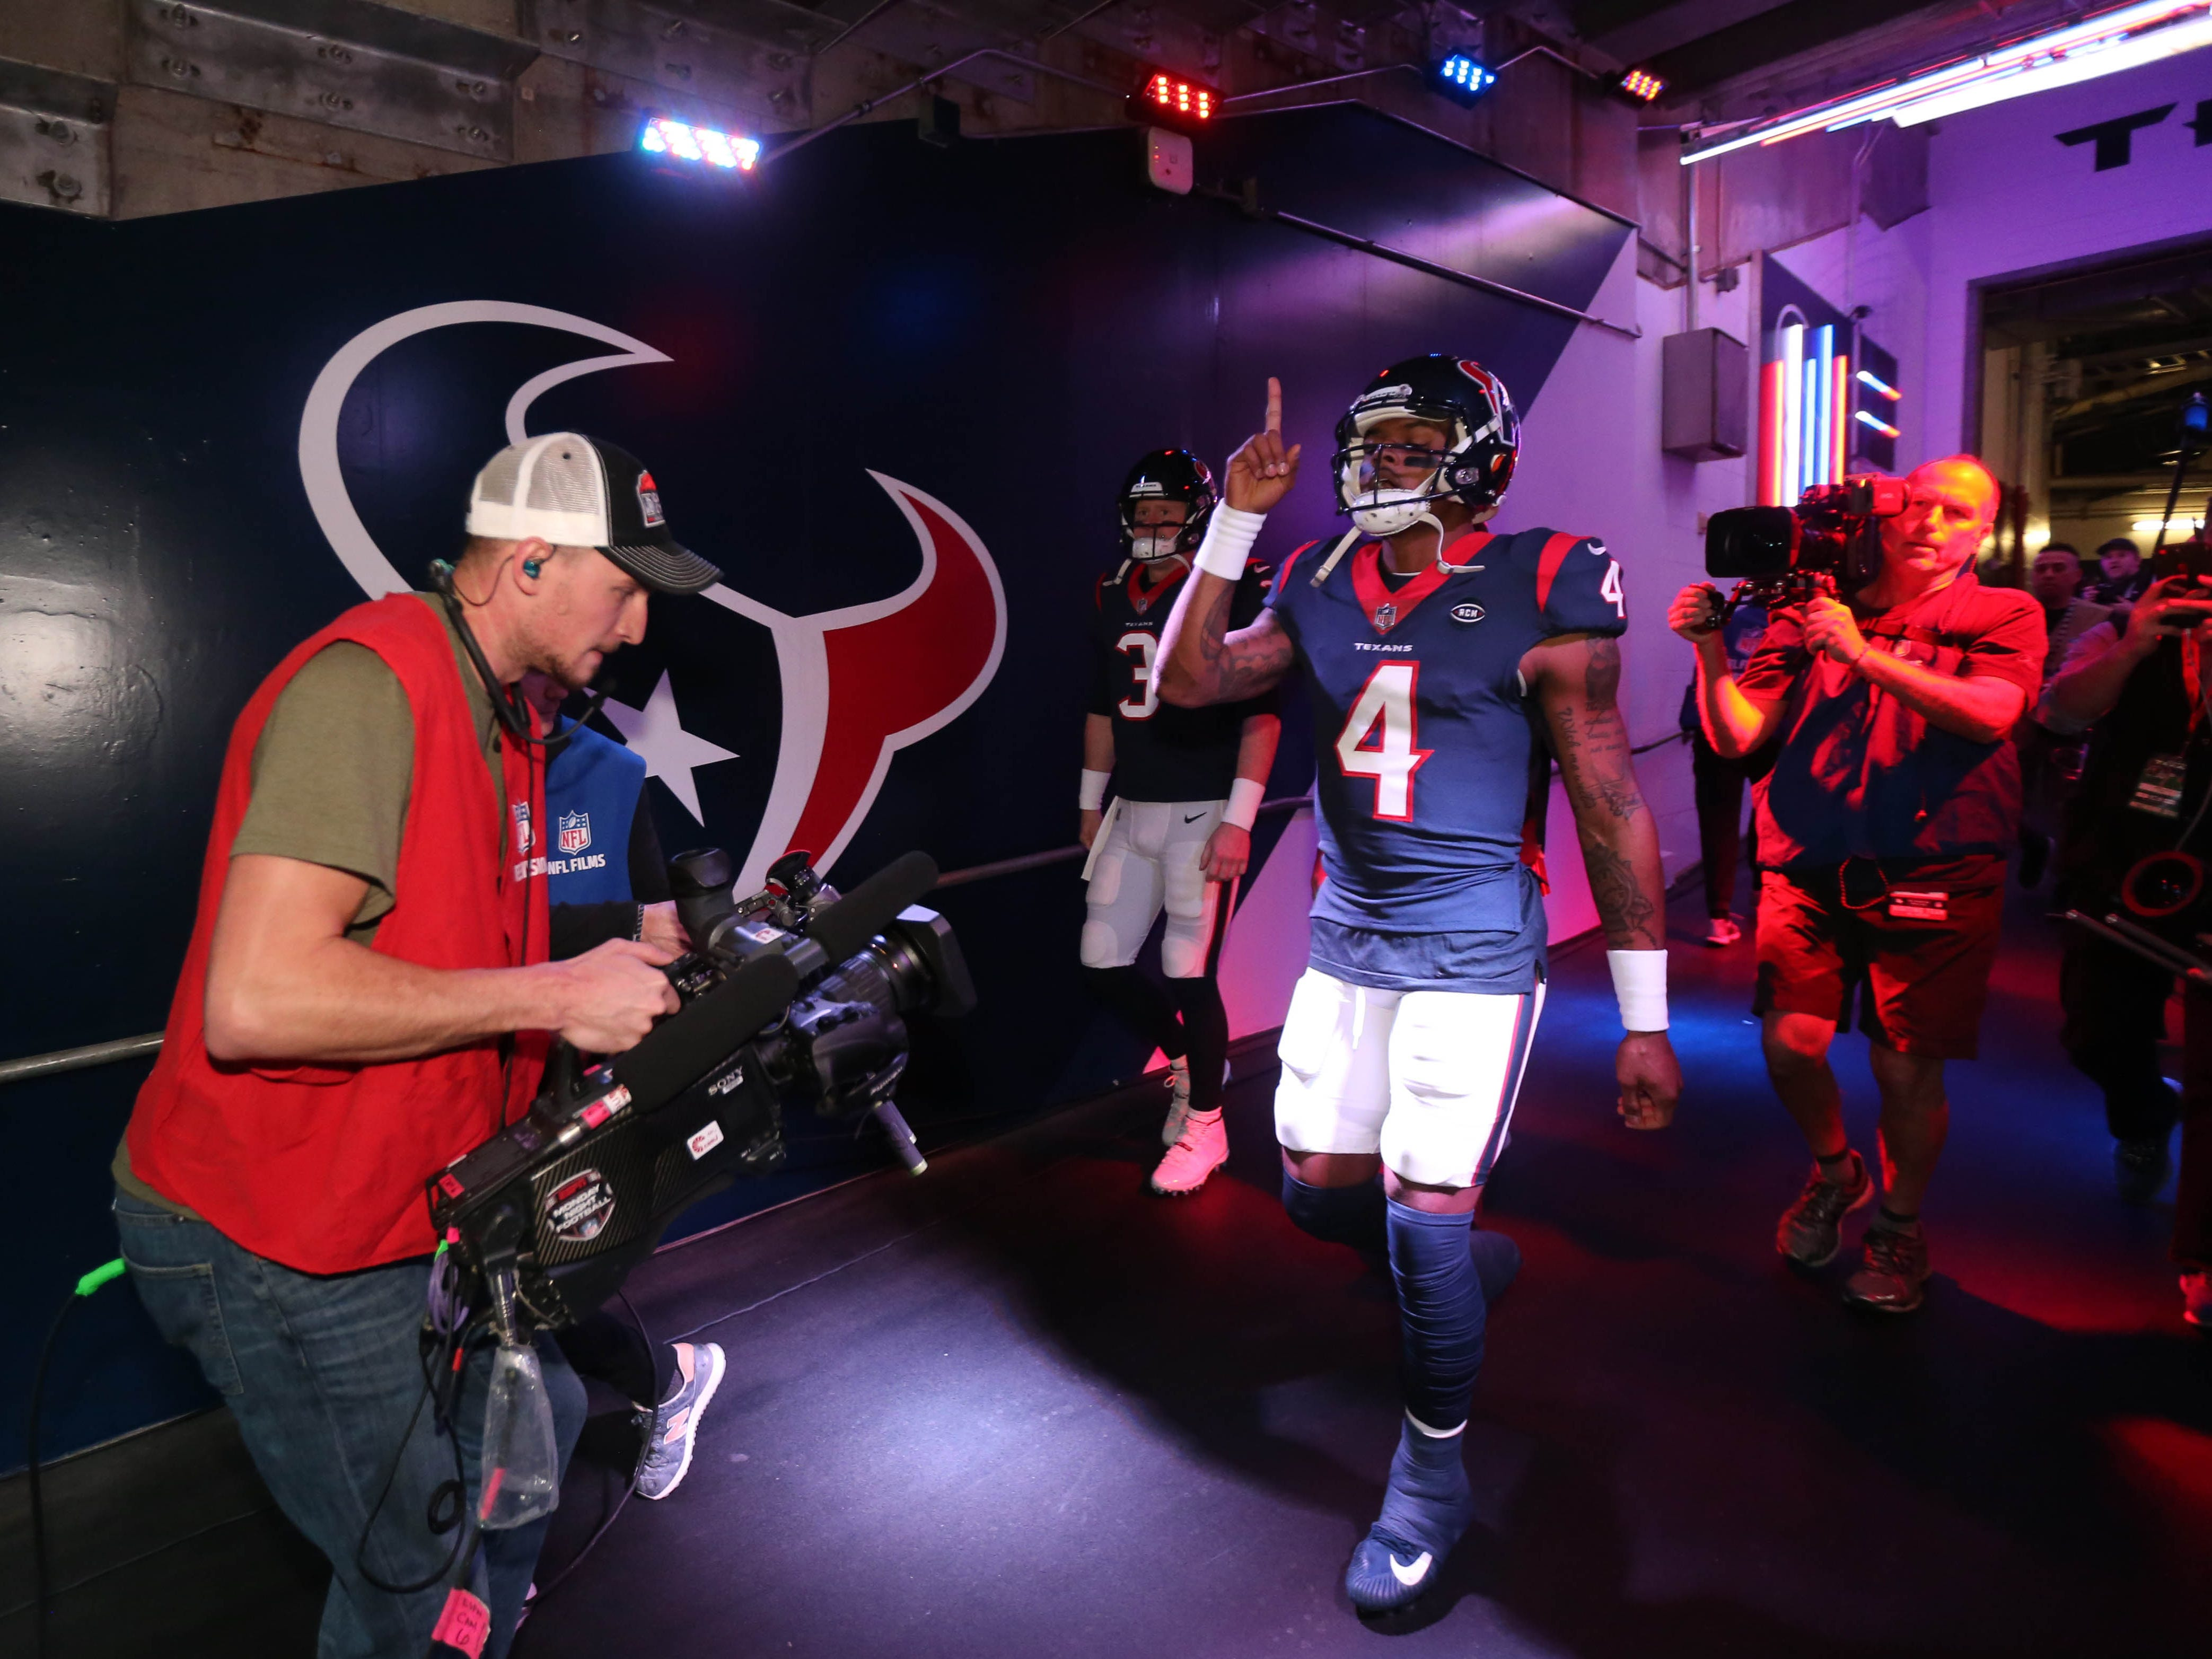 Houston Texans quarterback Deshaun Watson (4) heads to the field before a AFC Wild Card playoff football game against the Indianapolis Colts at NRG Stadium.